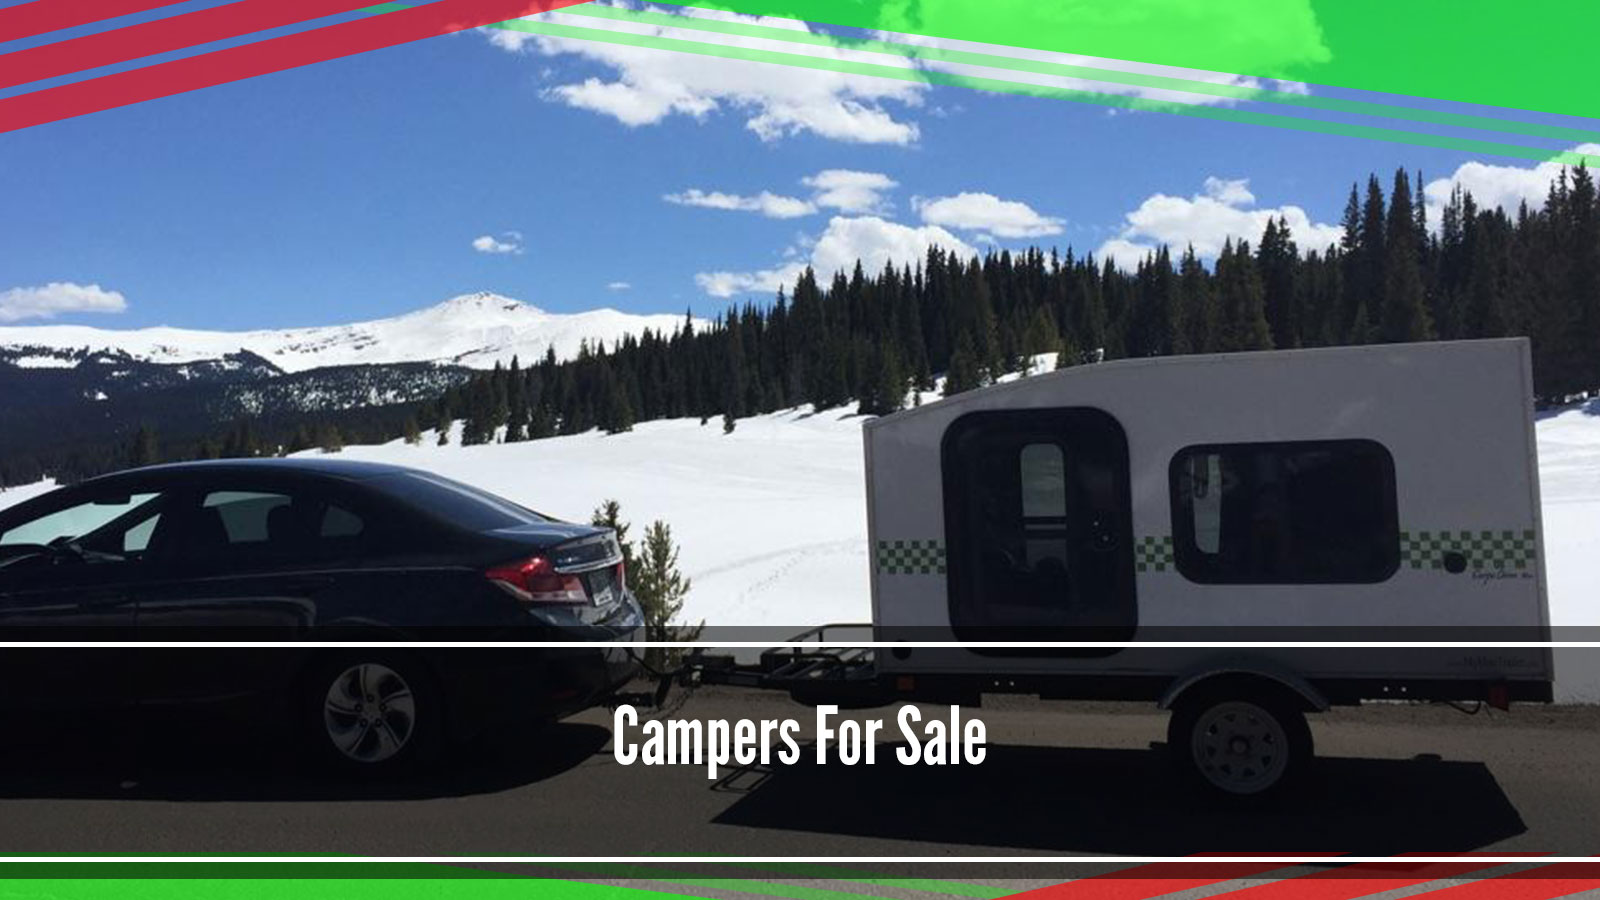 Campers For Sale